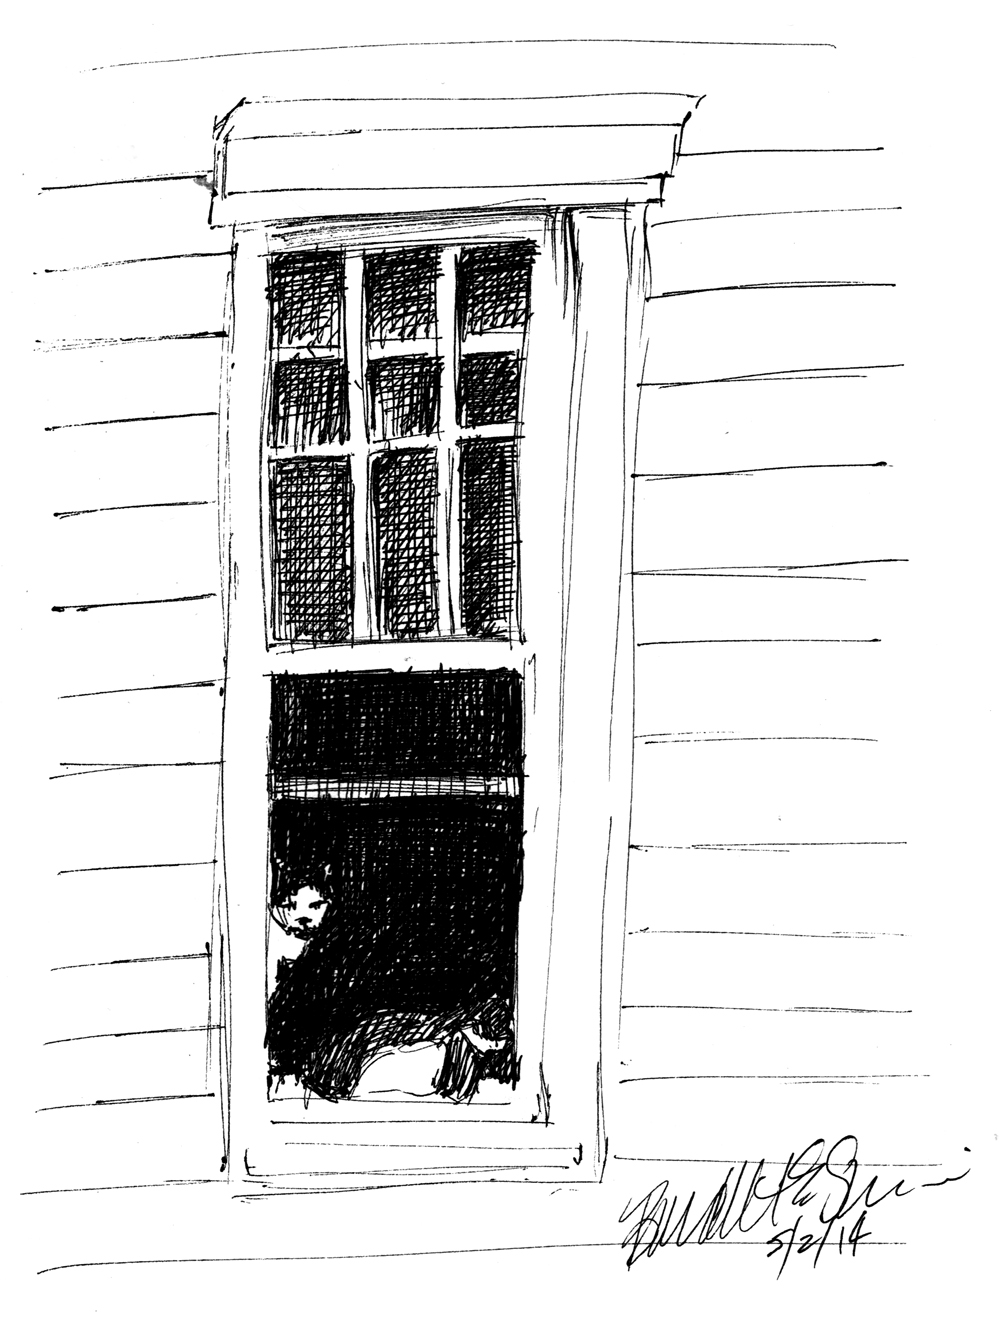 ink sketch of two cats in window.